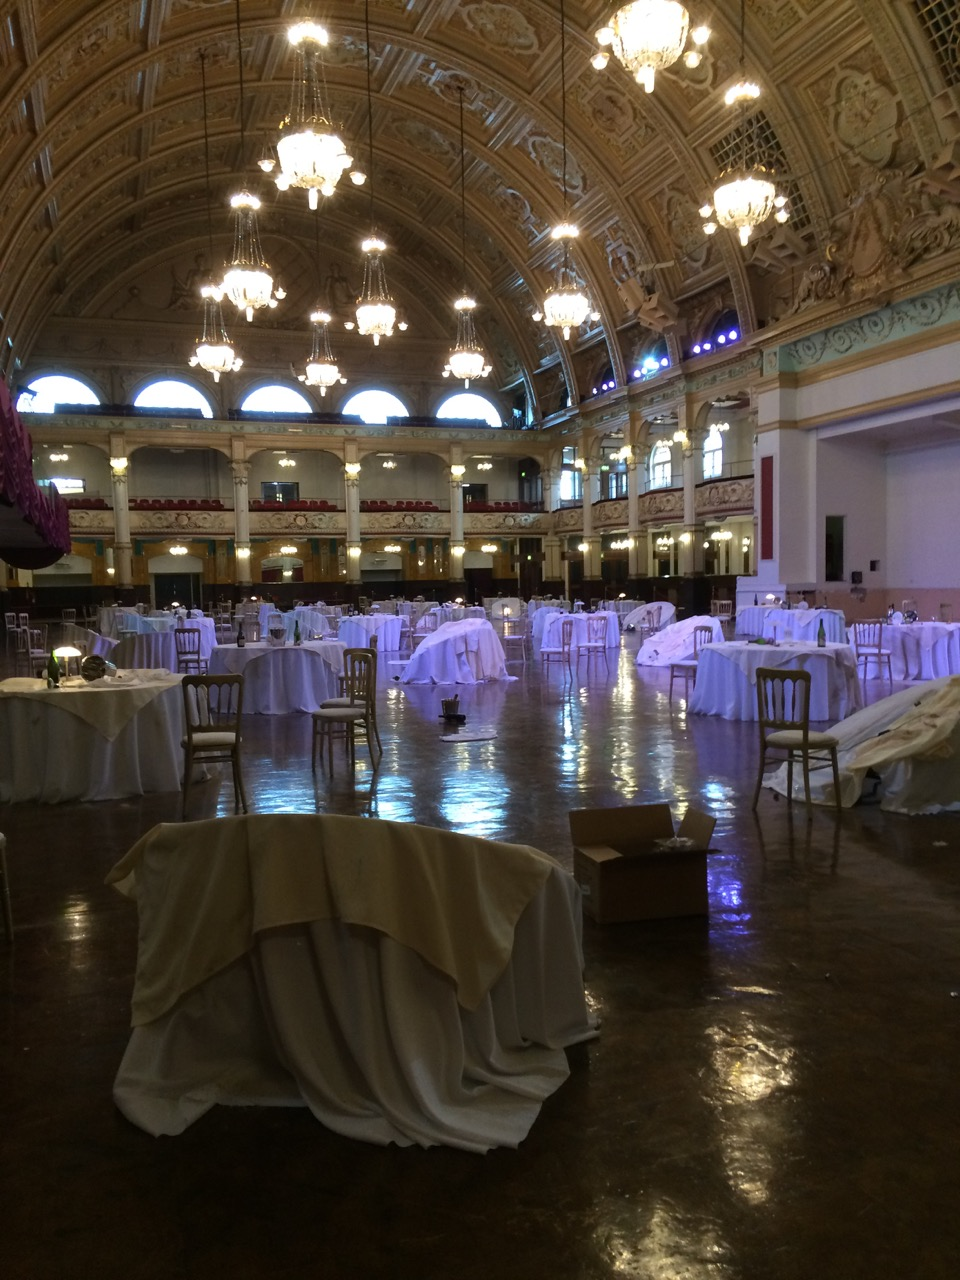 Th Ballroom being prepared